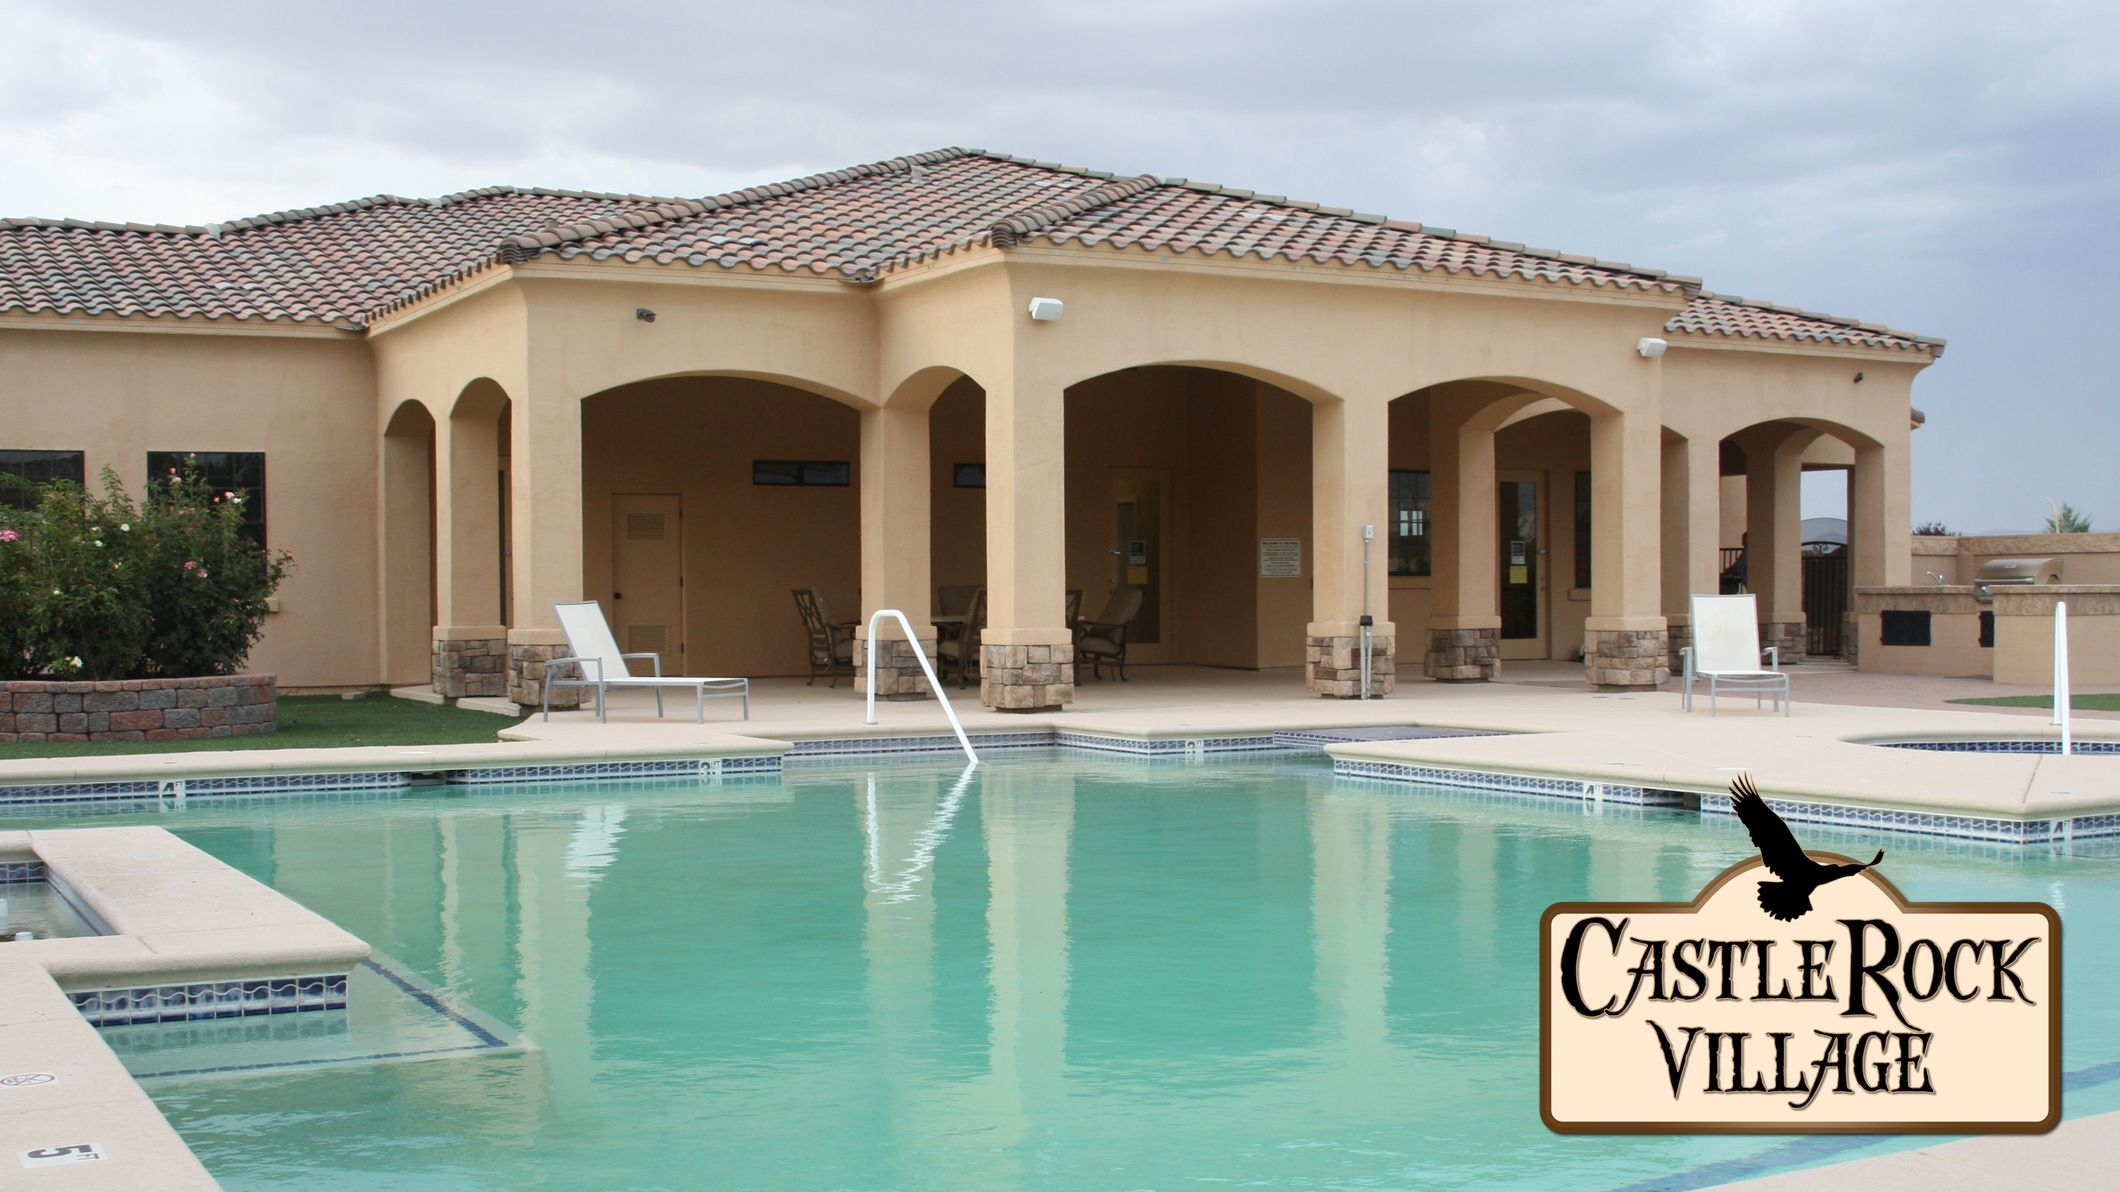 Enjoy the first gated community in Kingman, Arizona, the CastleRock Village. There are many amenities to appreciate such as the club house, pool, spa, and a workout facility giving you the option to have the active life style that you always dreamed of.